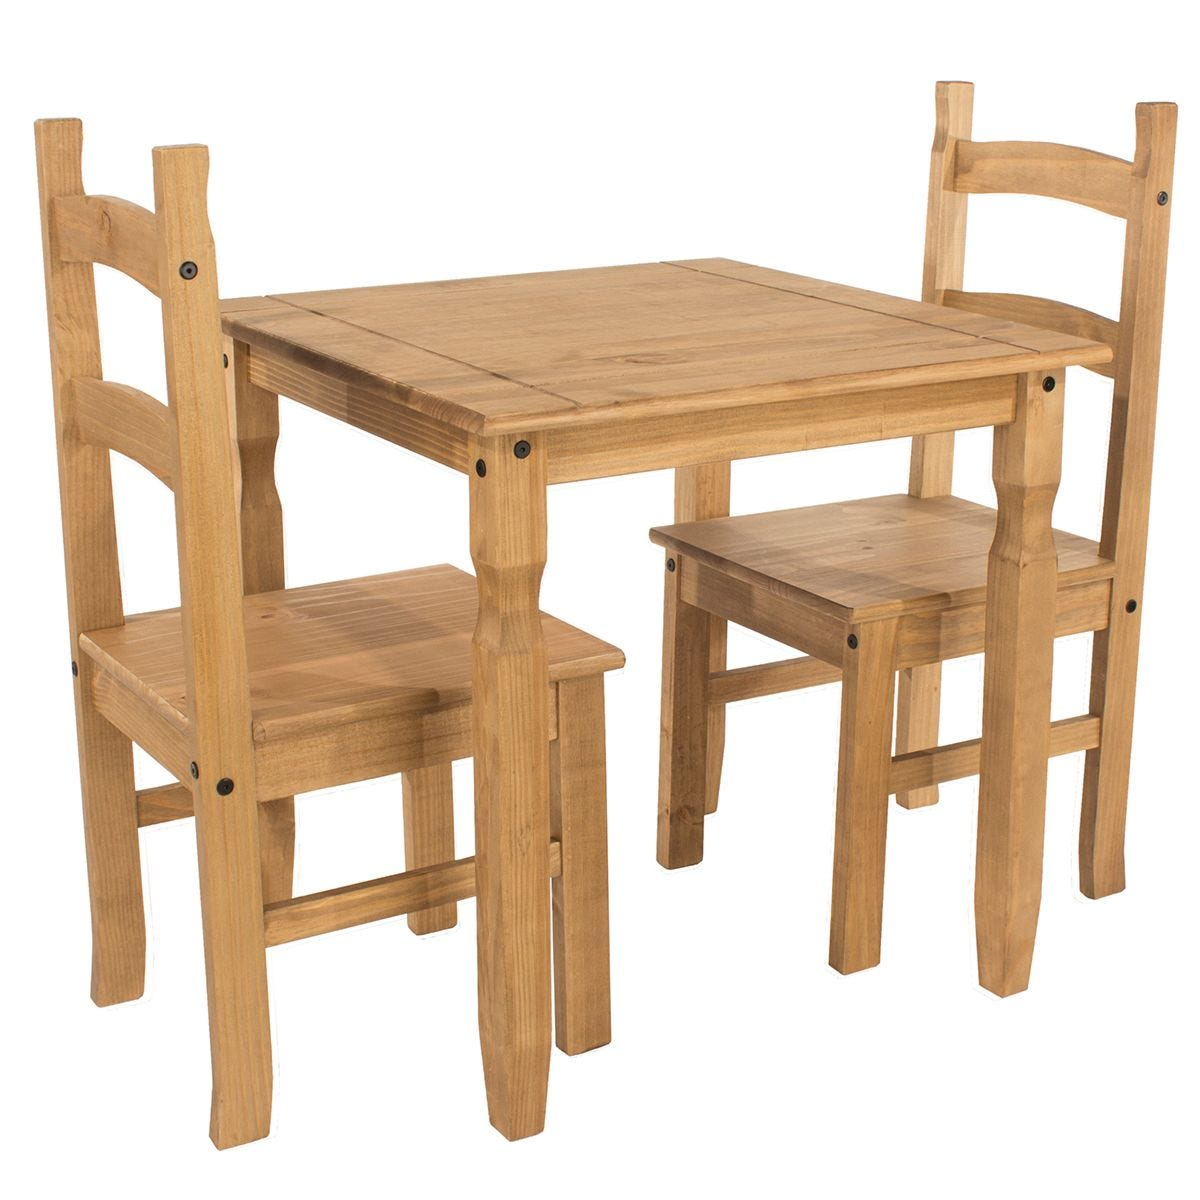 Halea Square Dining Table & 2 Chairs